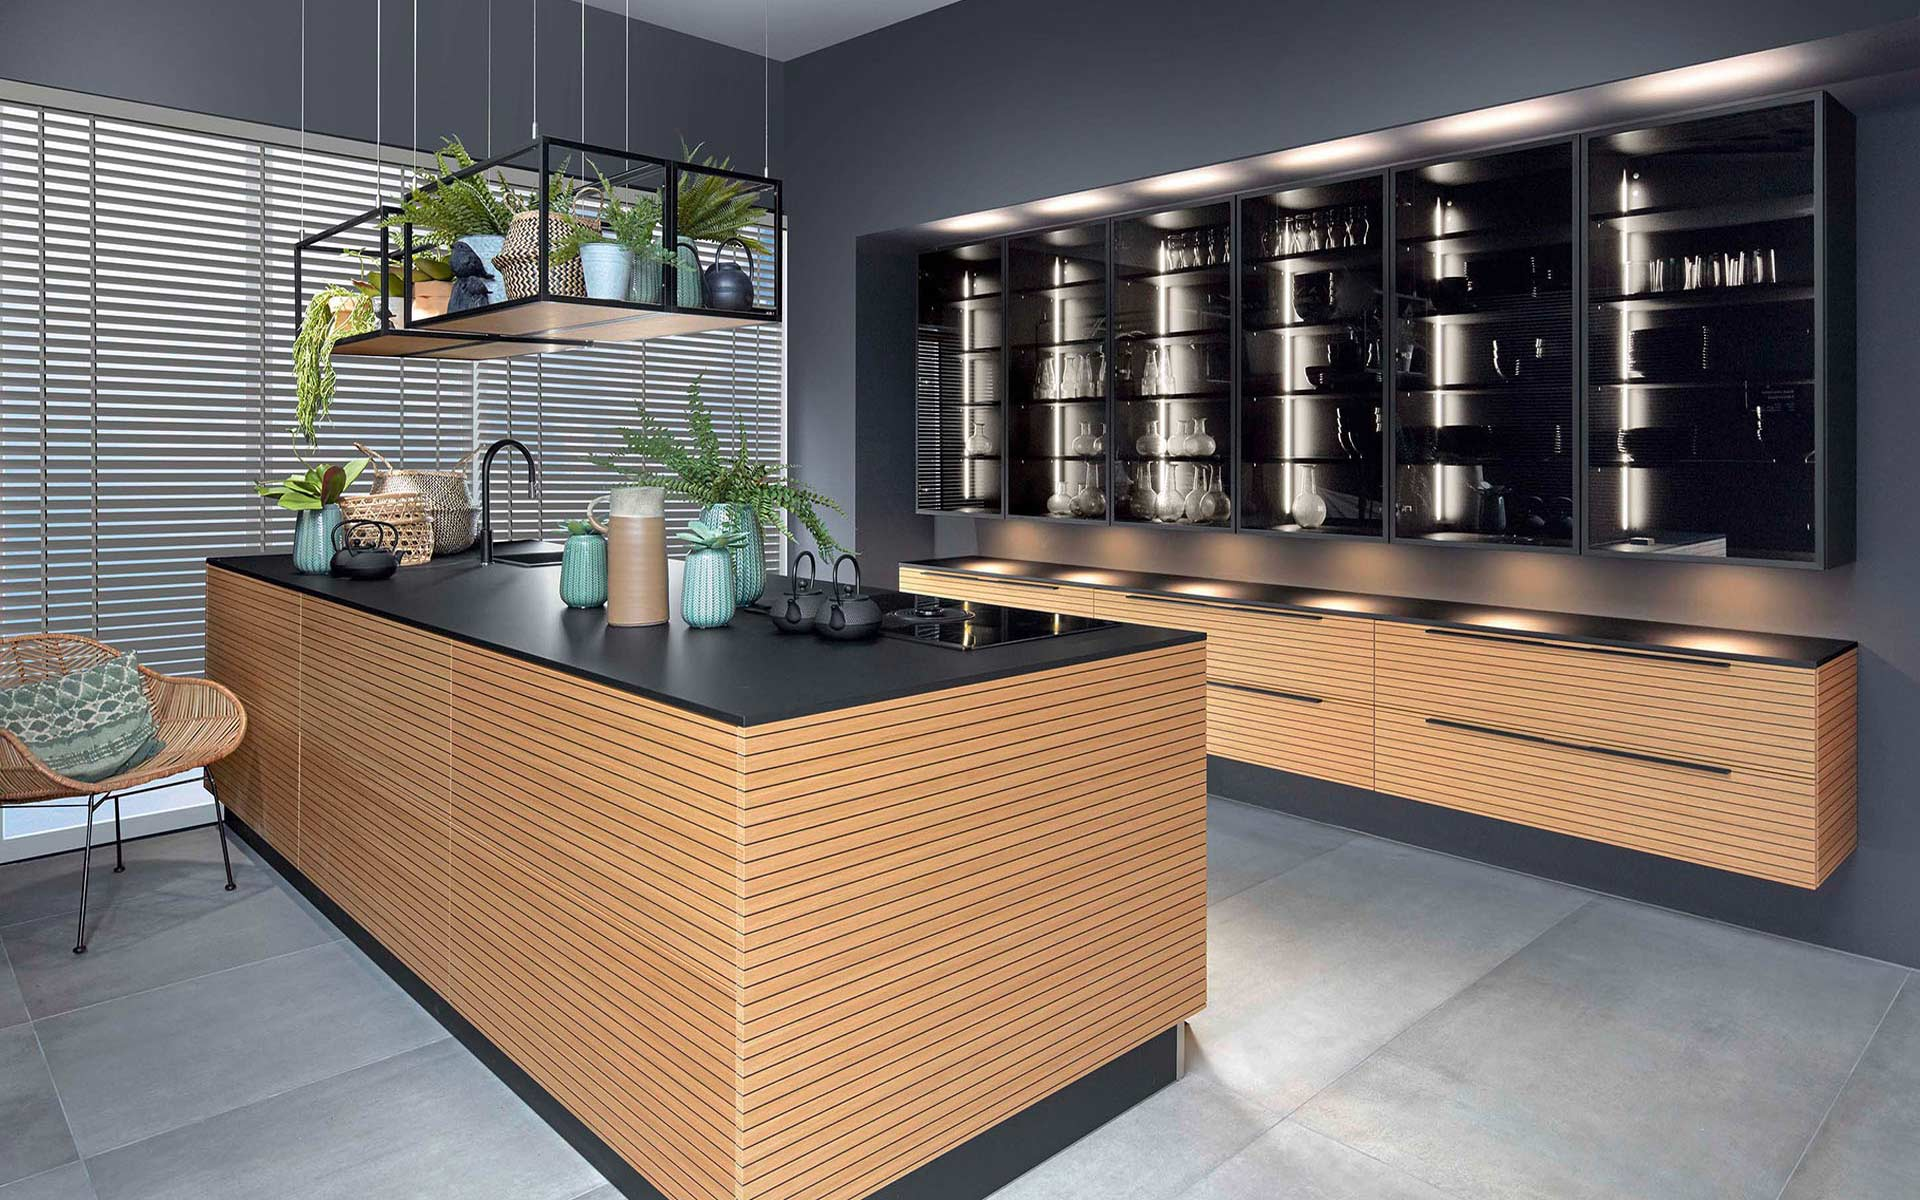 Toronto: Kitchens from Germany, Europe. Black Line Natur